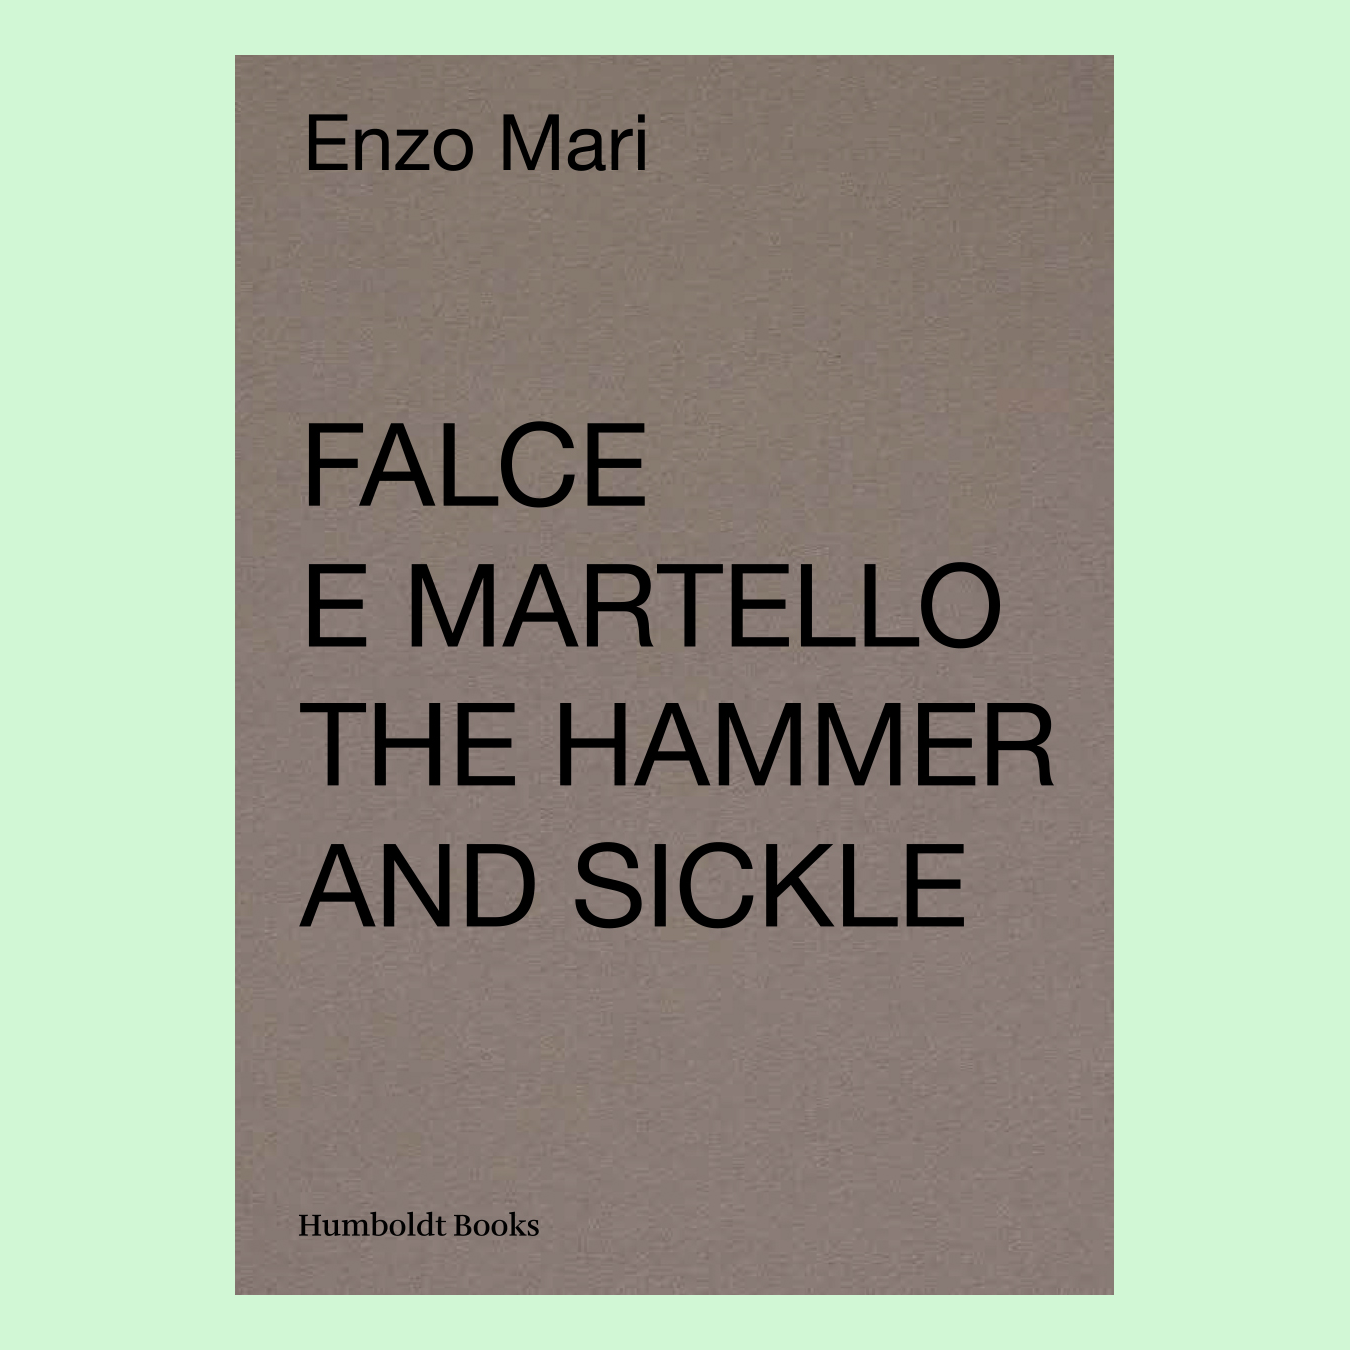 Falce e martello / The Hammer and Sickle